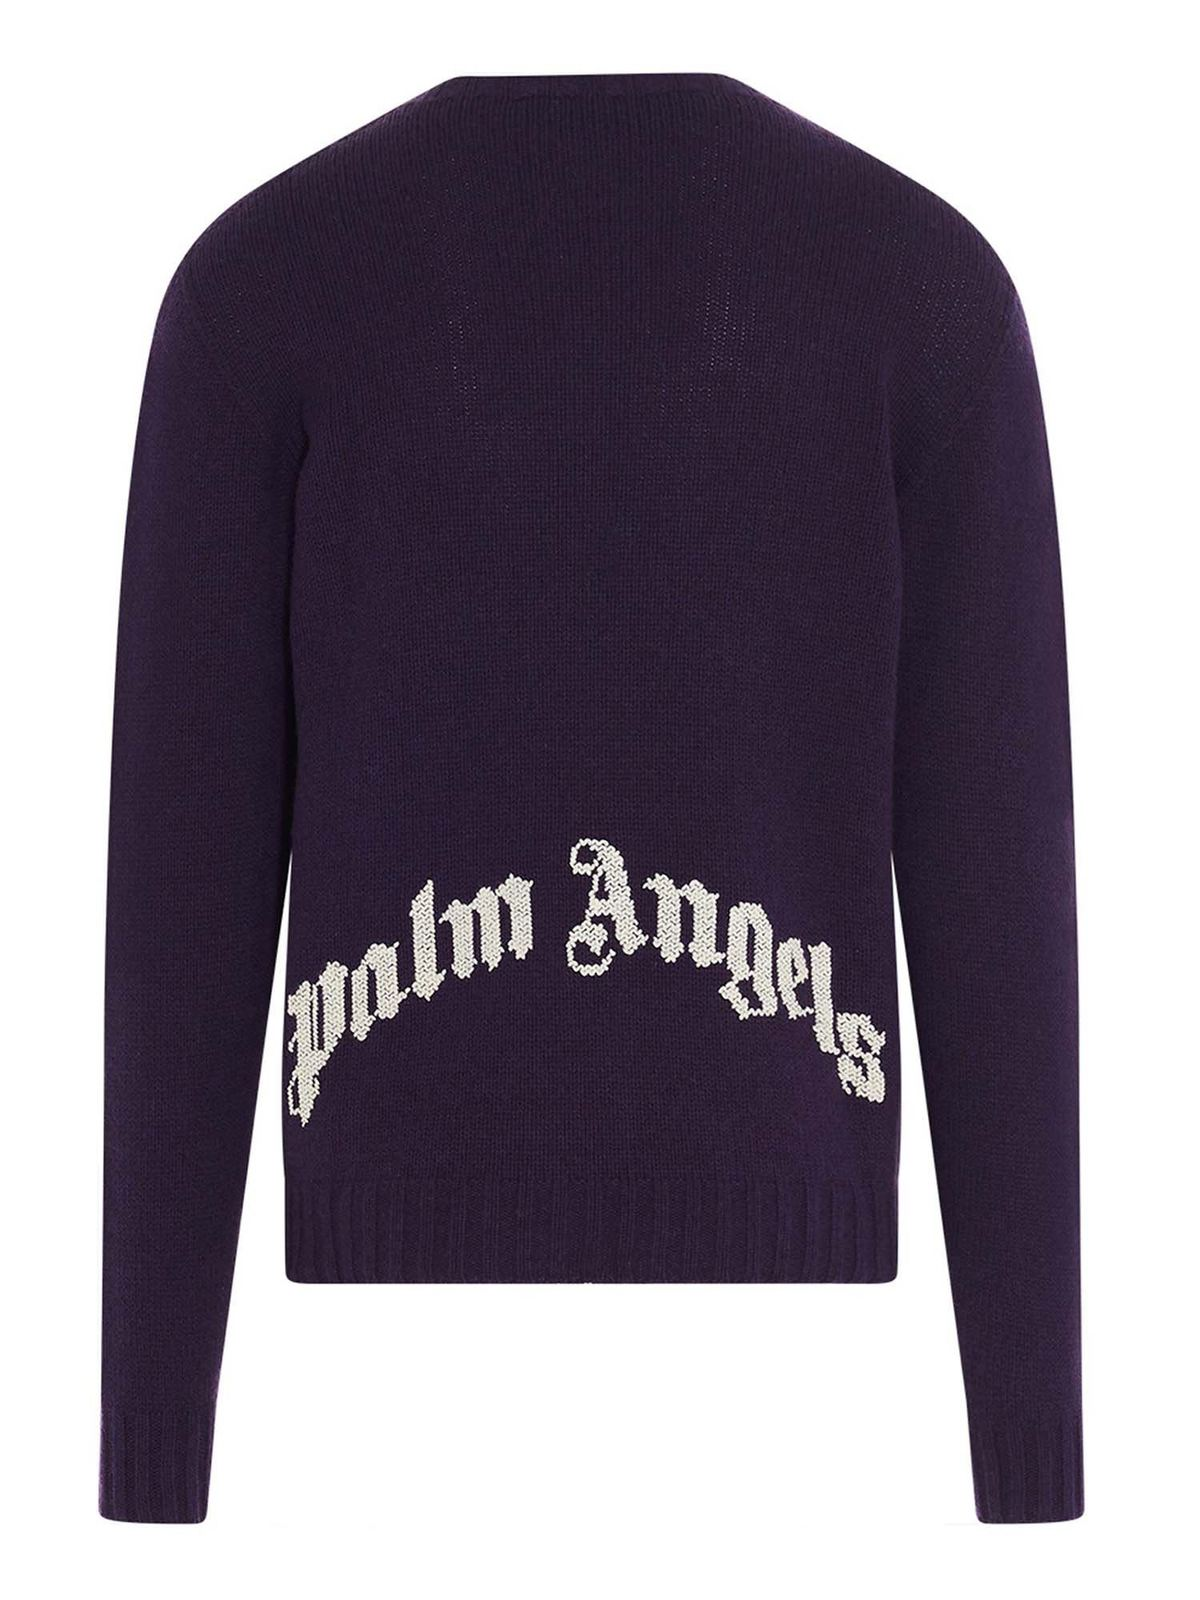 Palm Angels REC LOGO PULLOVER IN PURPLE